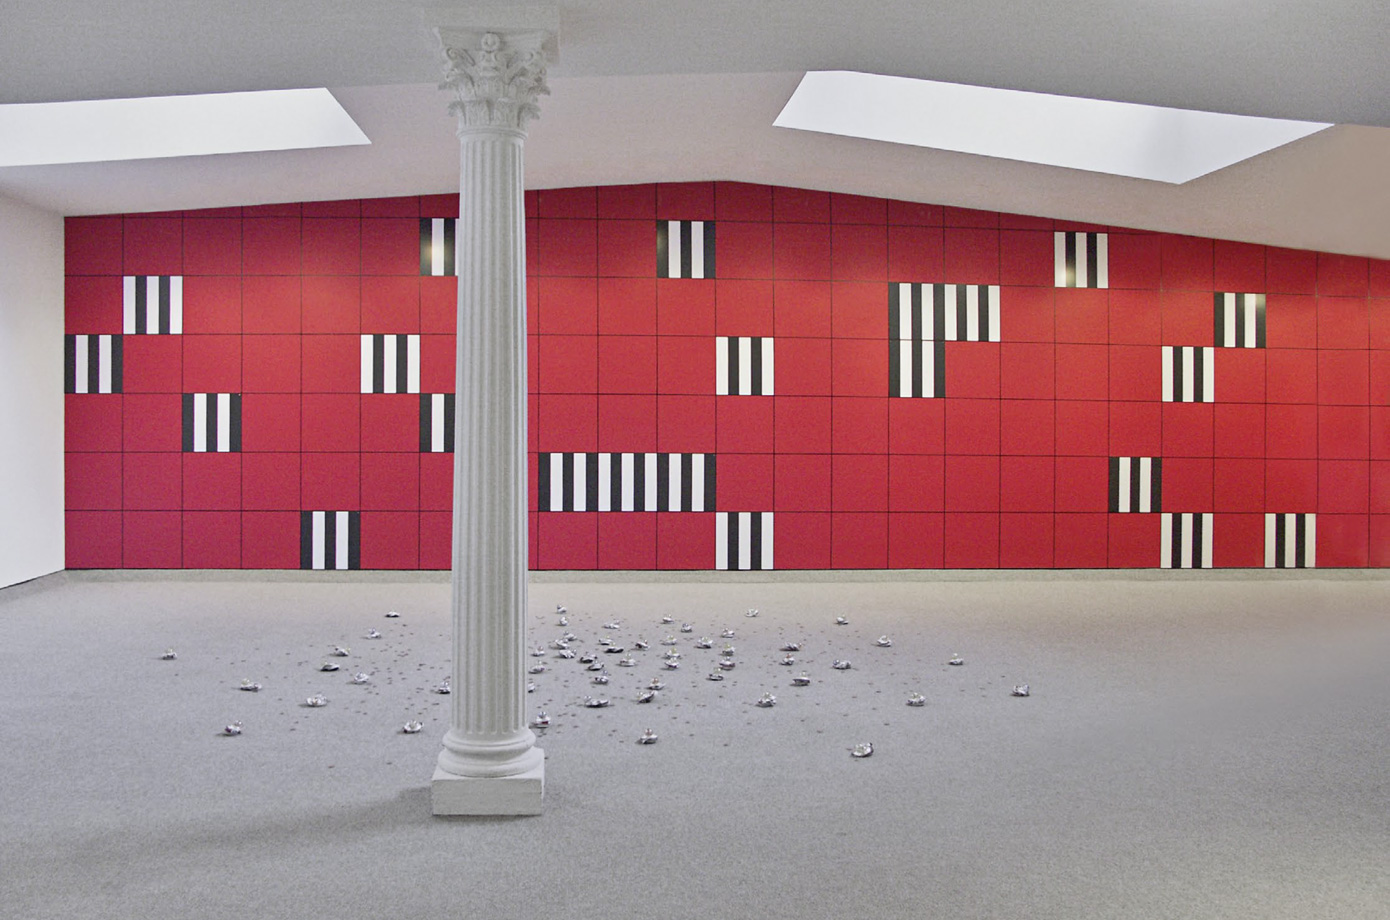 Daniel Buren - Unexpected Variable Configurations: A Work in Situ